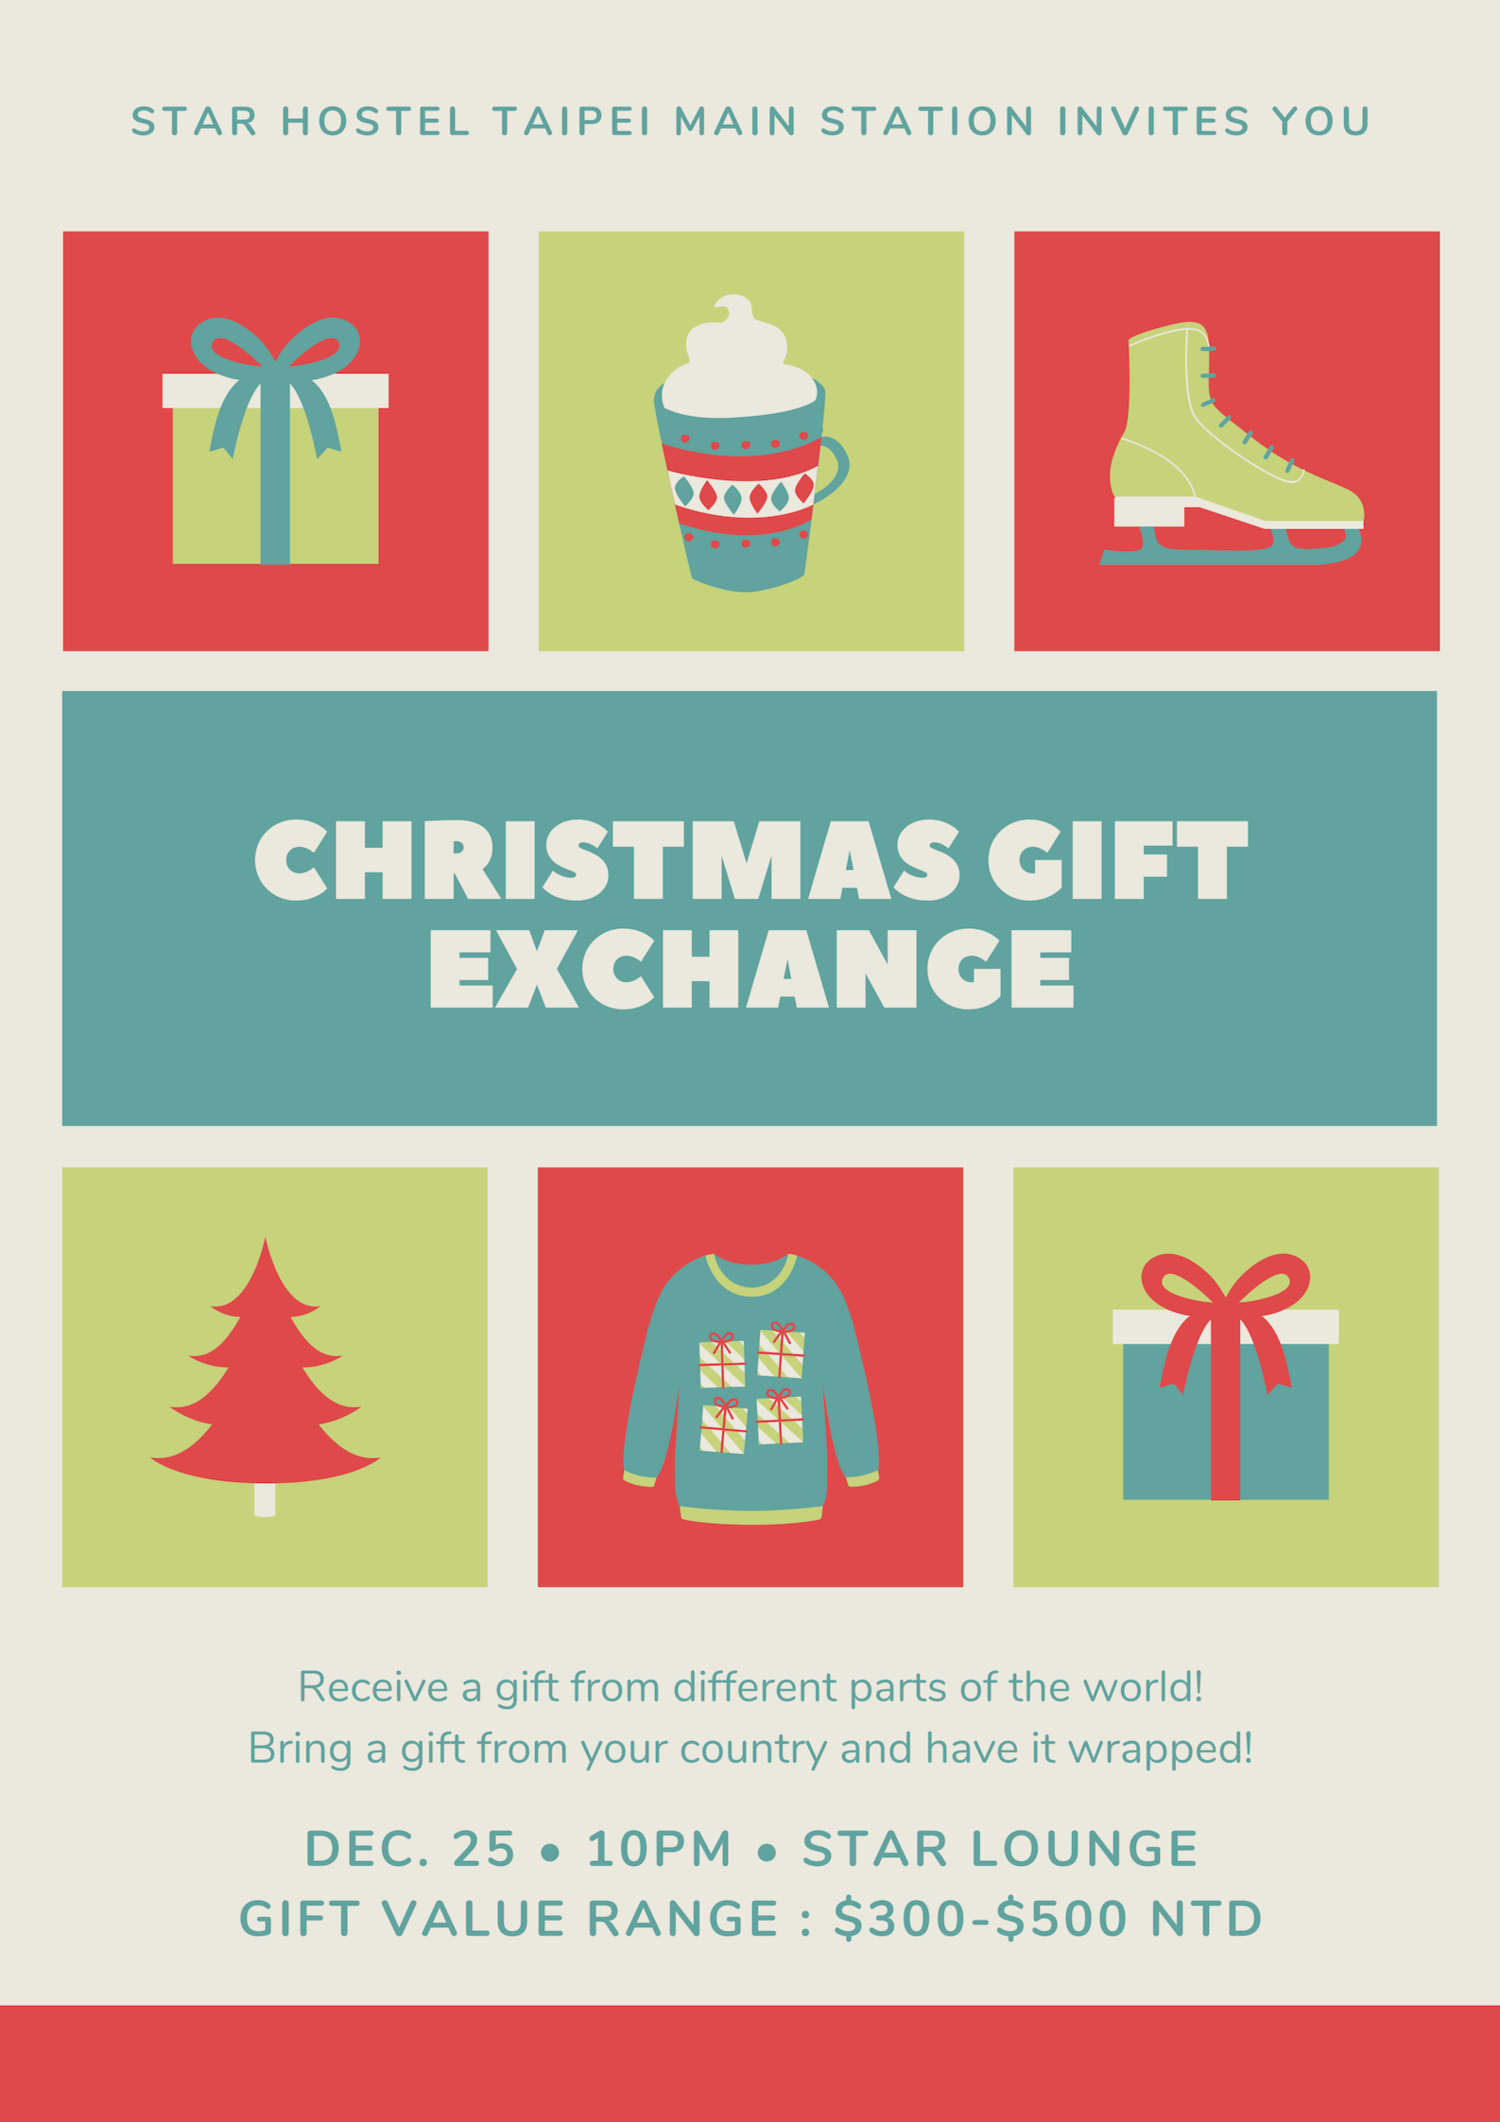 Christmas Gift Exchange.Christmas Gift Exchange Star Hostel Taipei Main Station